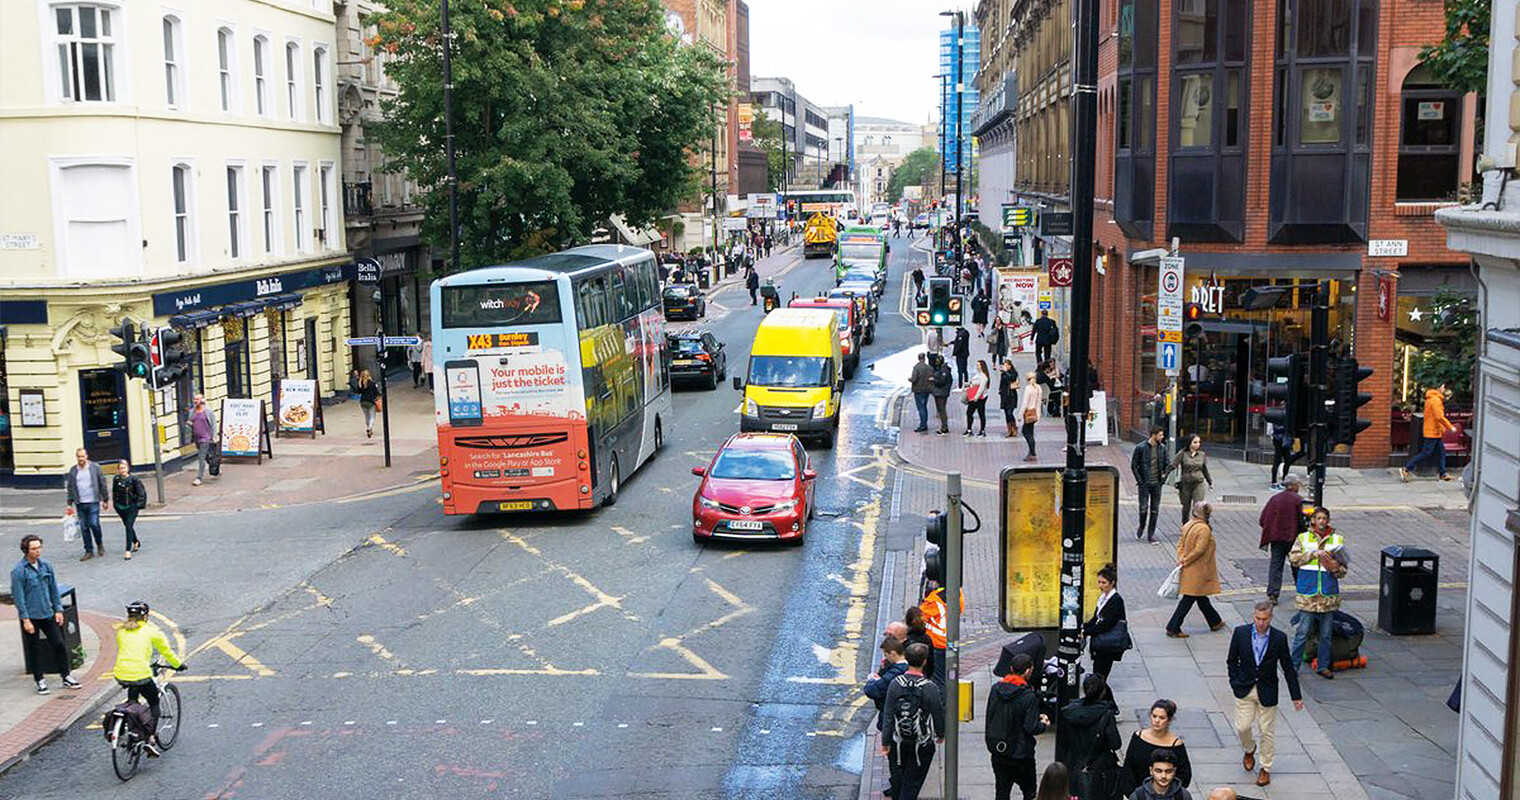 There's calls from some members of the public to ban cars from Manchester city centre entirely, The Manc